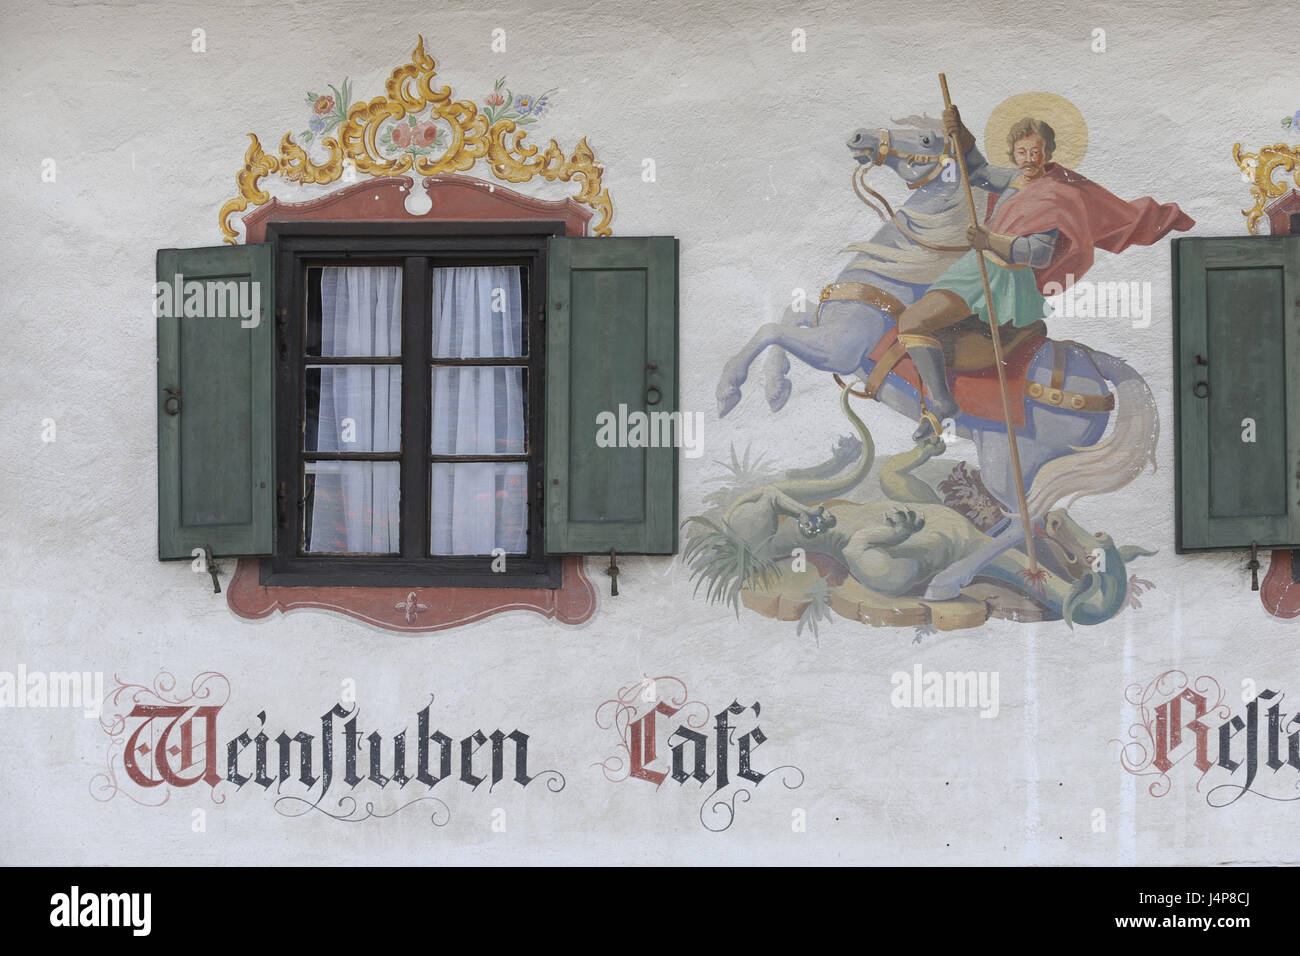 Lüftlmalerei of the holy piece Georg fights with the dragon on a house facade in Schliersee, - Stock Image